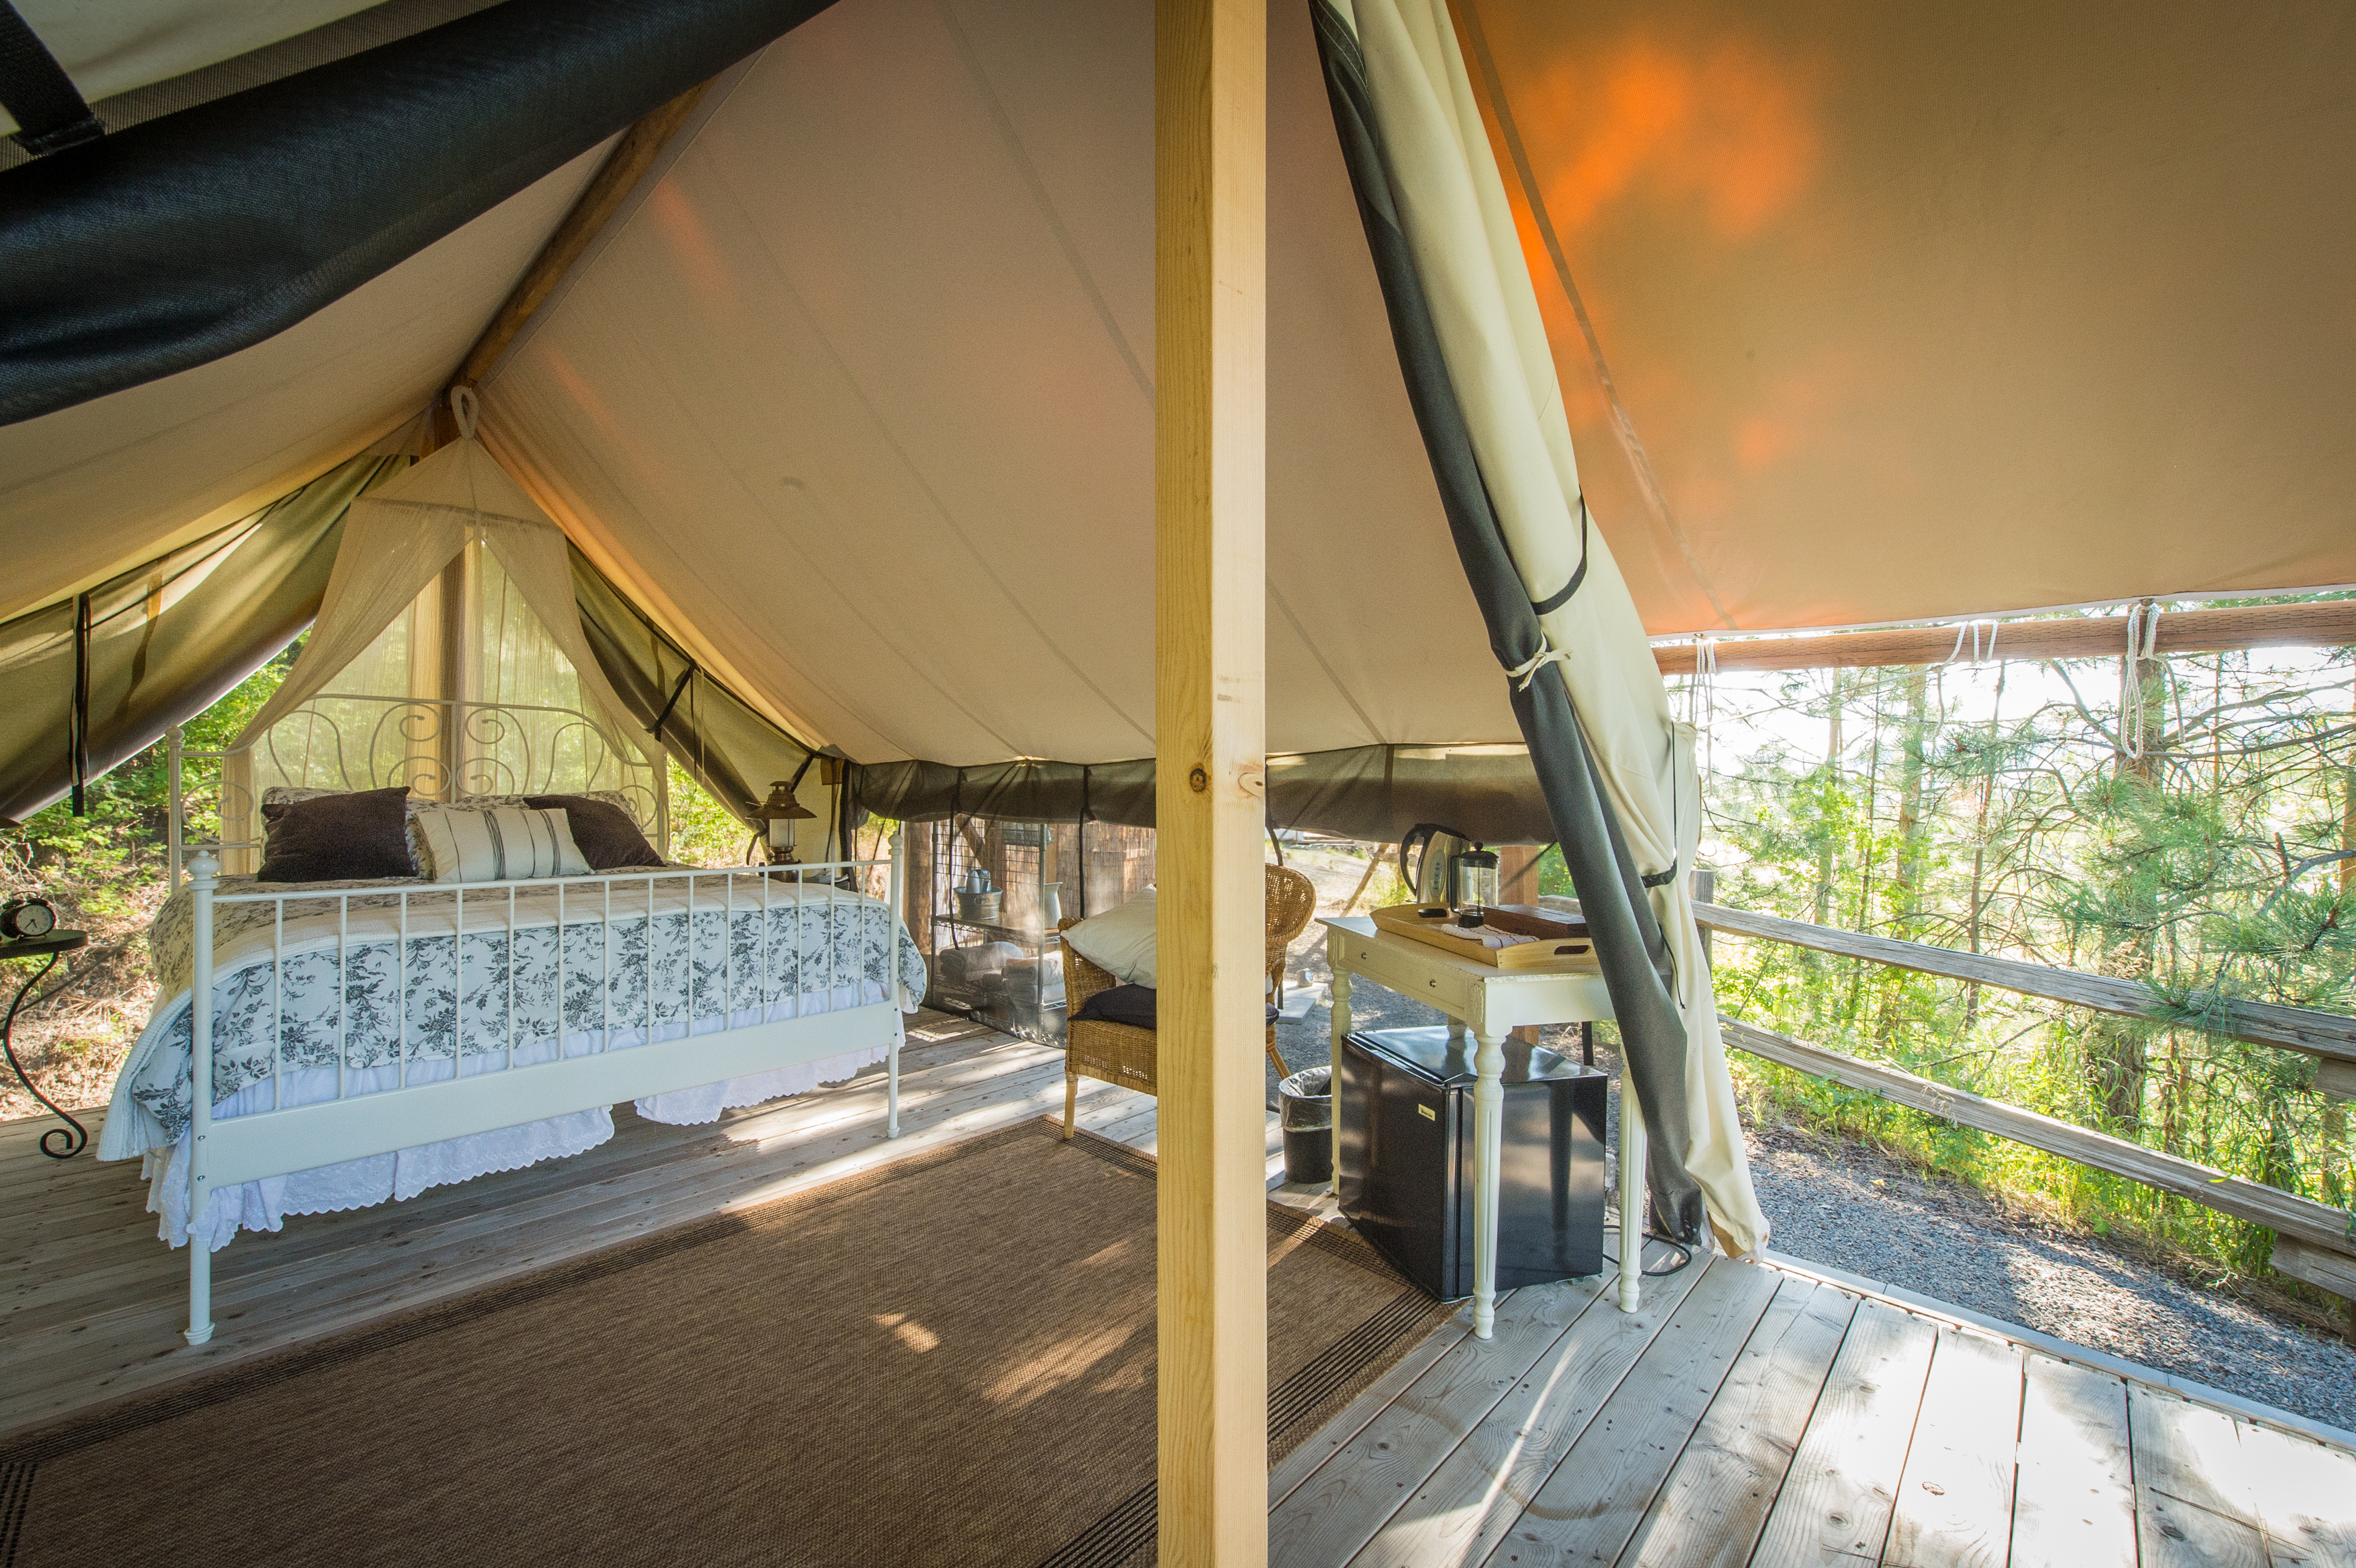 & Luxury Secluded Safari Tents in Washington State